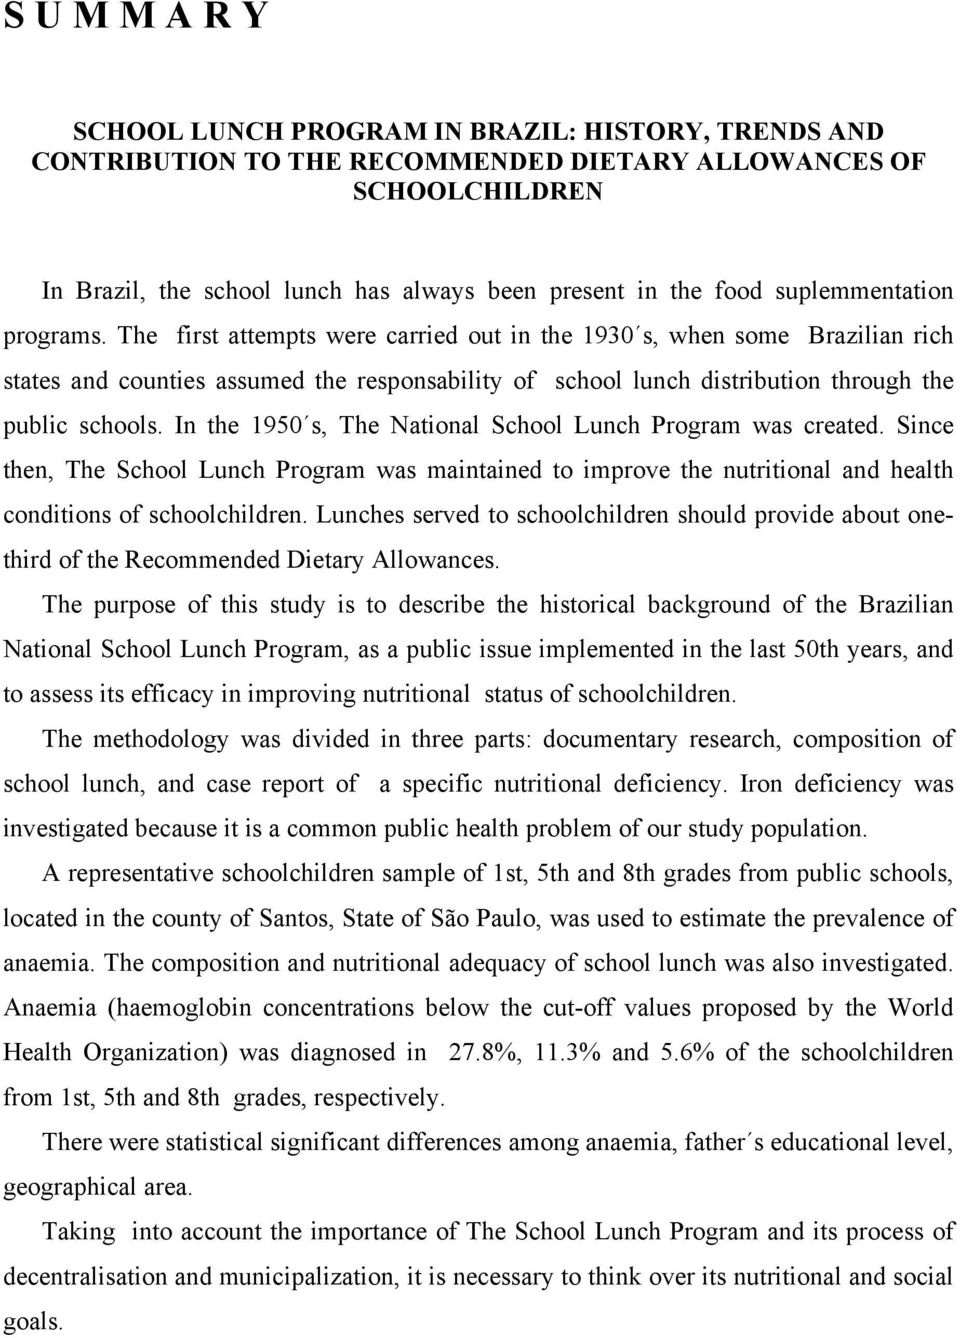 The first attempts were carried out in the 1930 s, when some Brazilian rich states and counties assumed the responsability of school lunch distribution through the public schools.